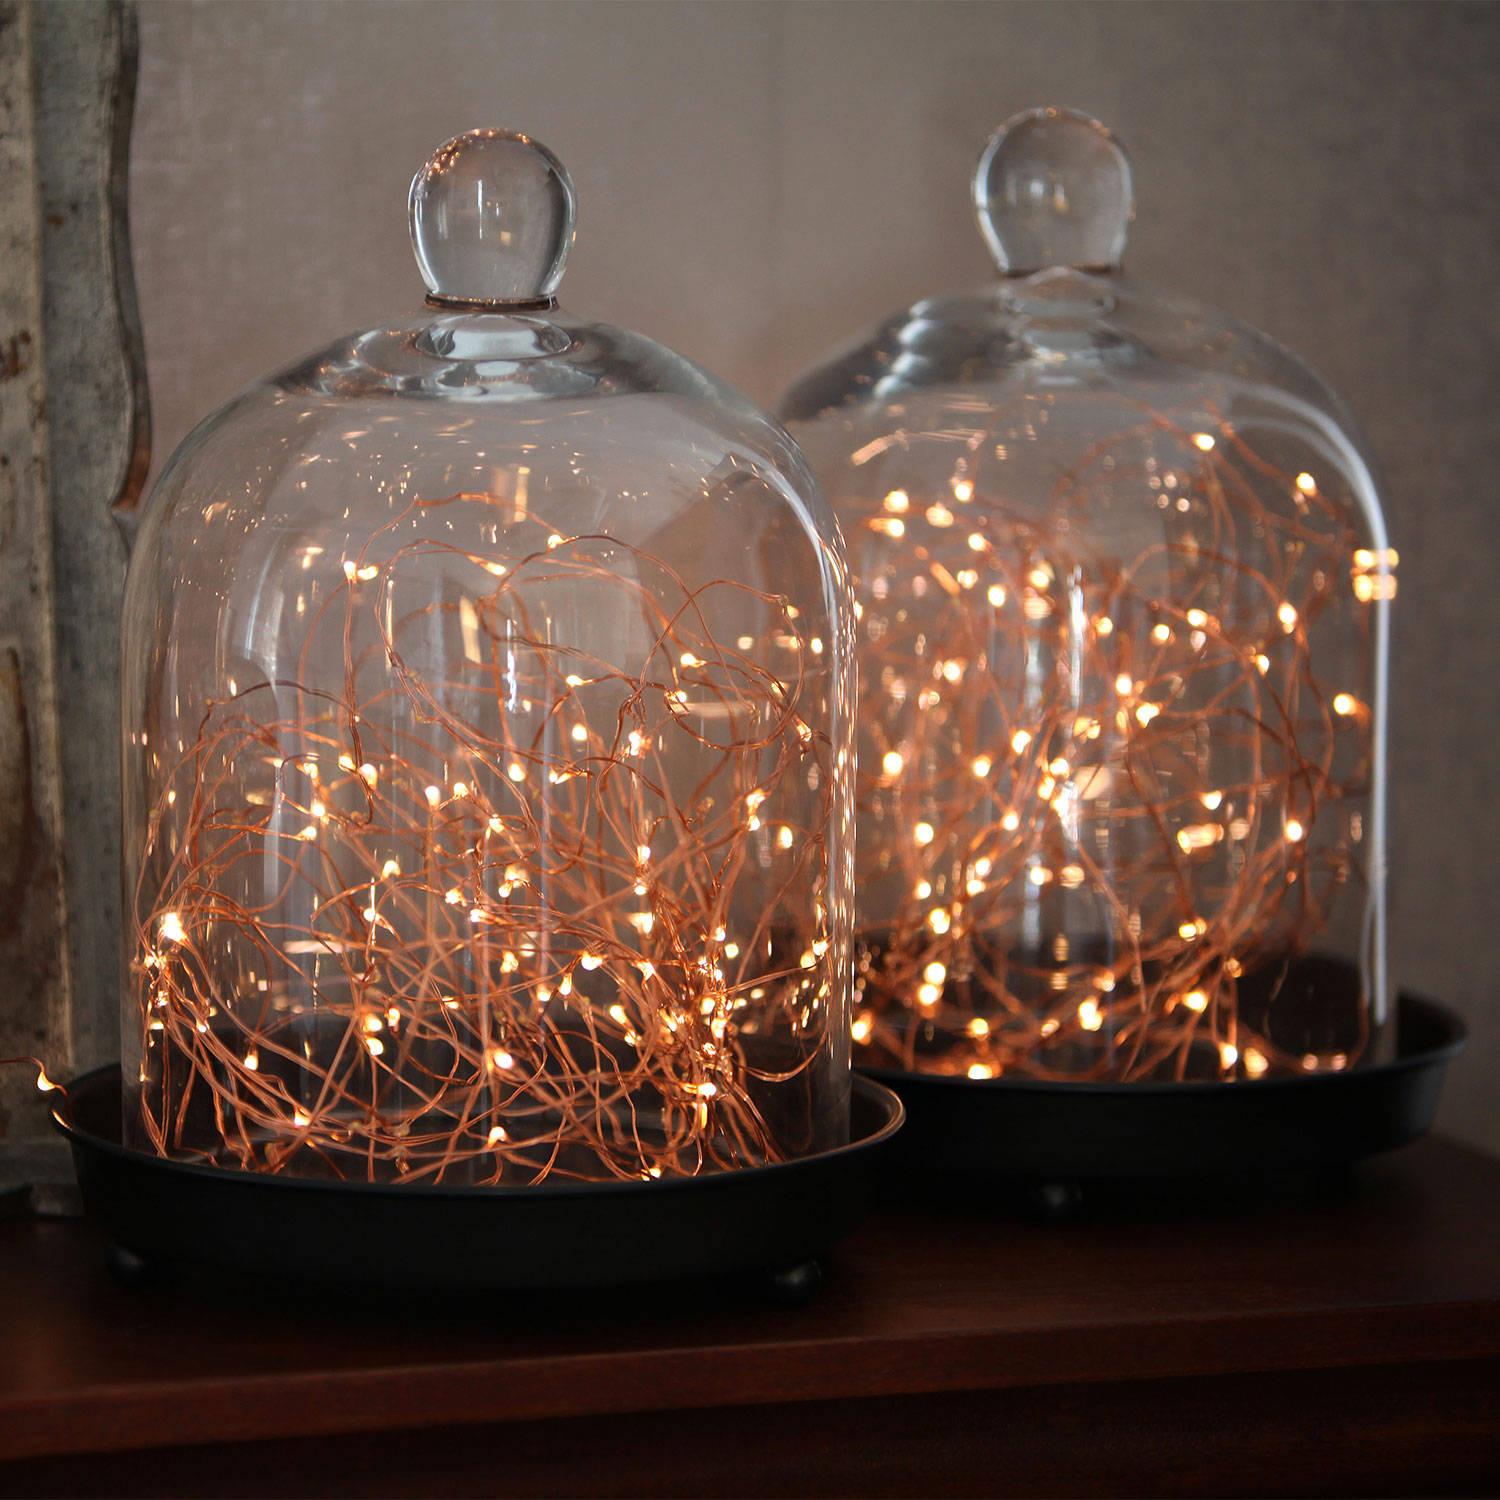 String Lights With Wire : Lights.com String Lights Fairy Lights 300 Warm White Starry LED Copper Wire Plug-in String ...